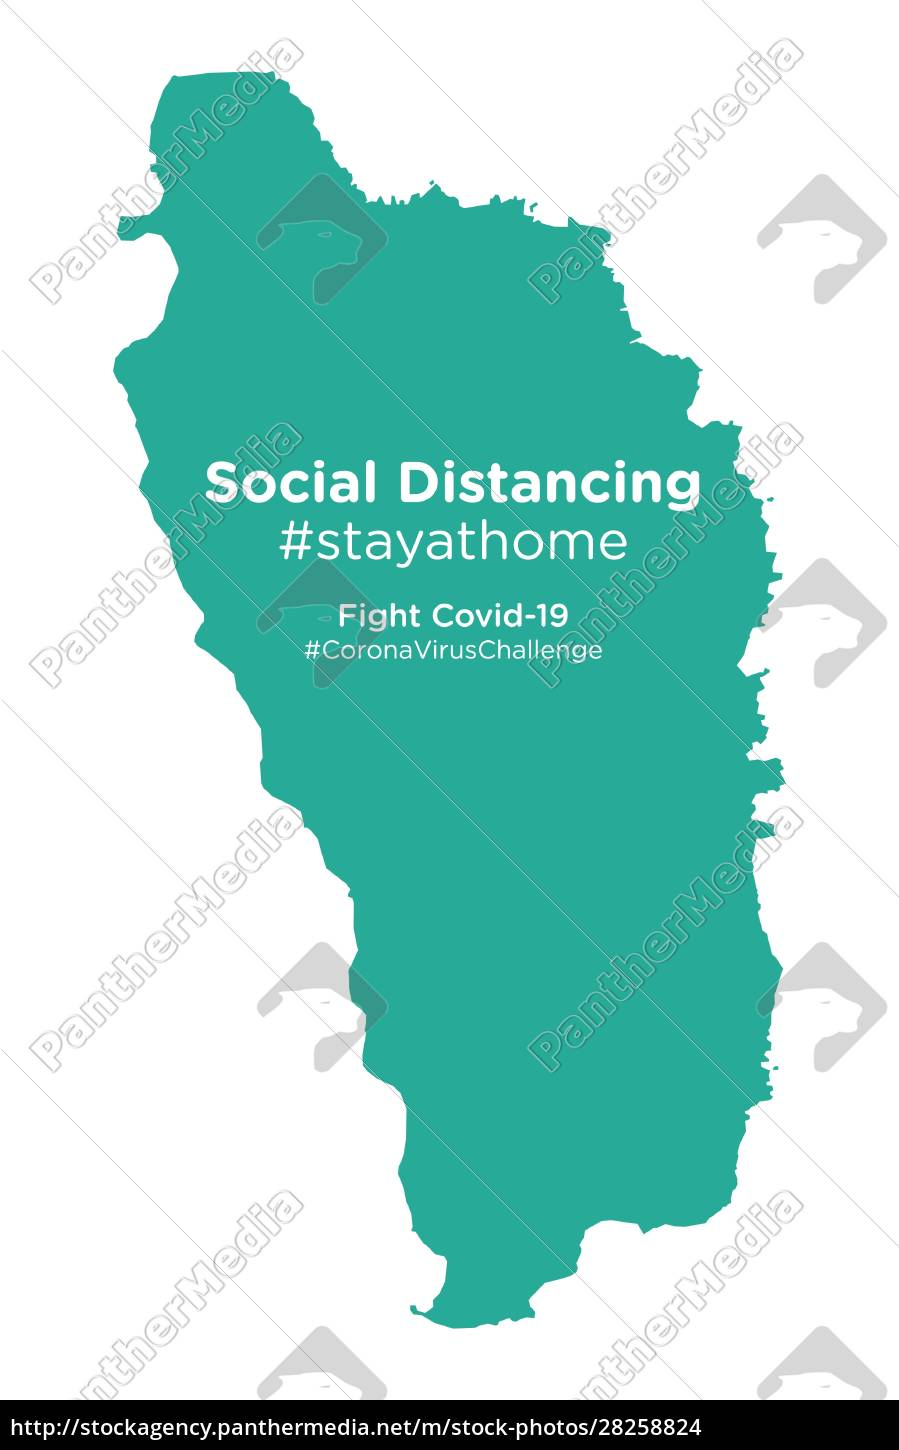 dominica, map, with, social, distancing, #stayathome - 28258824